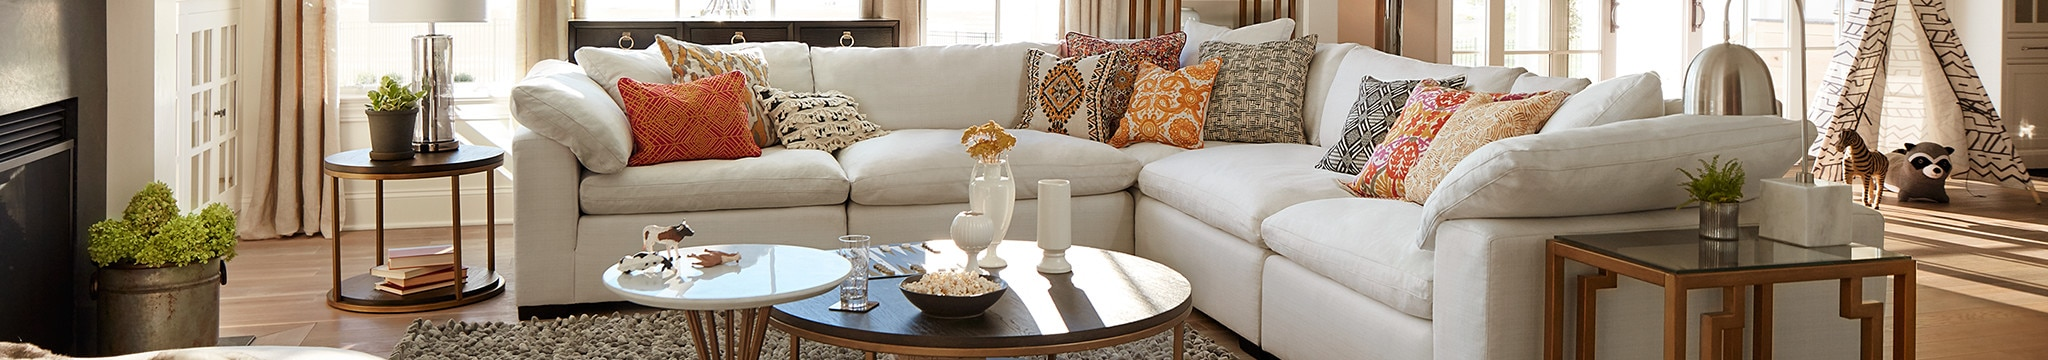 jive chenille living room furniture collection large mirrors for wall ottomans seating value city